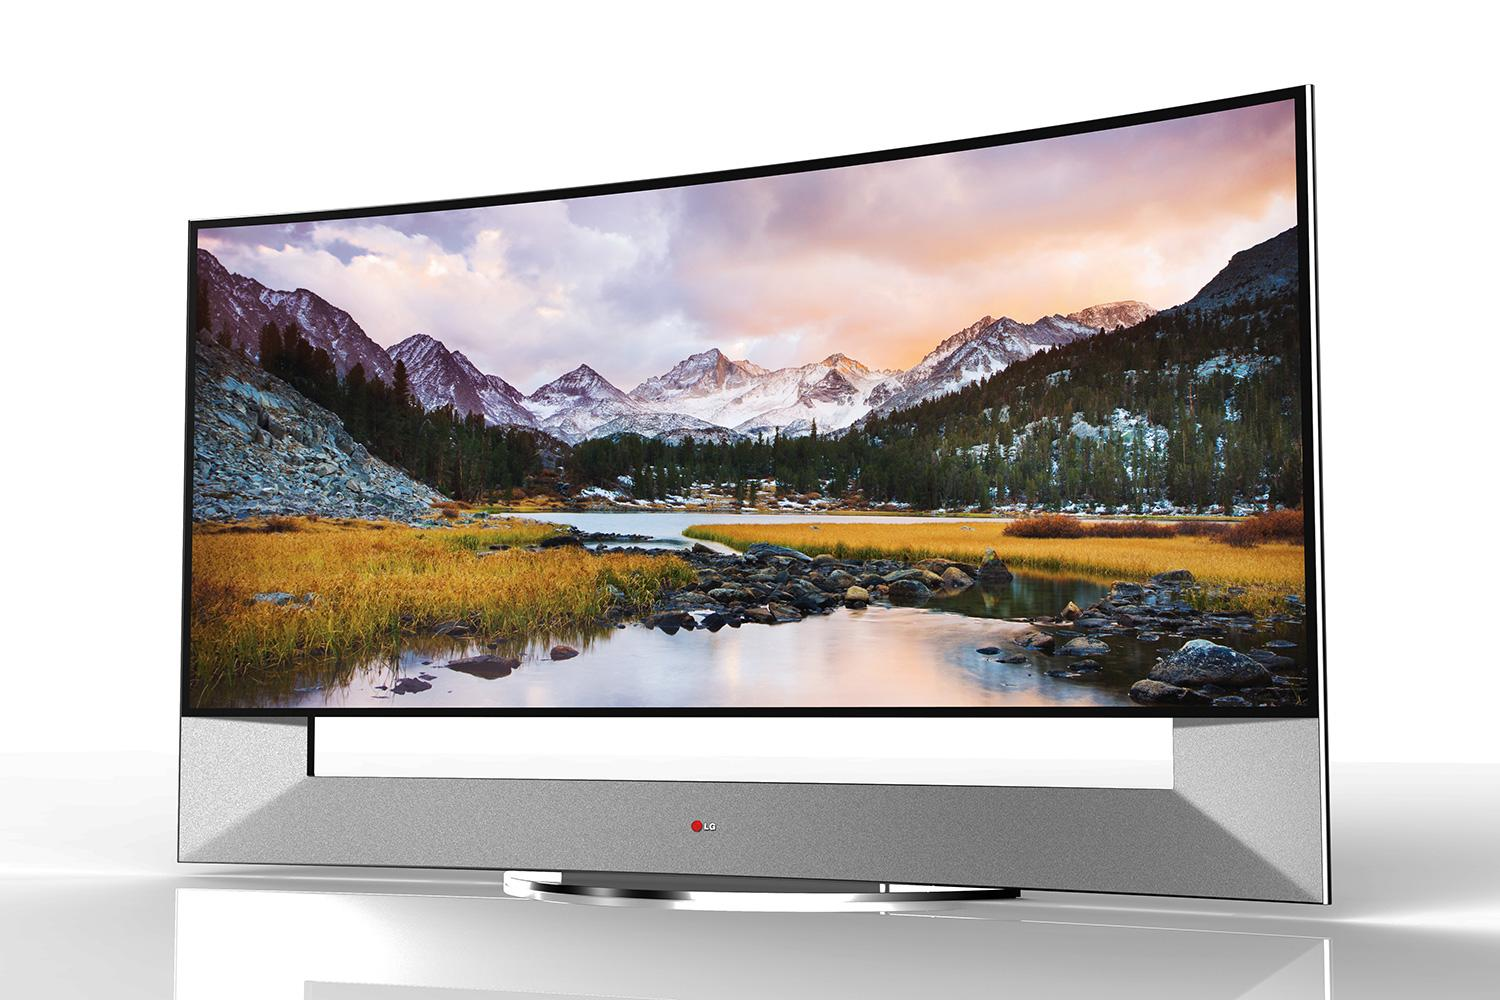 lg announces 105 inch curved 4k ultra hd tv ahead of ces 2014 digital trends. Black Bedroom Furniture Sets. Home Design Ideas